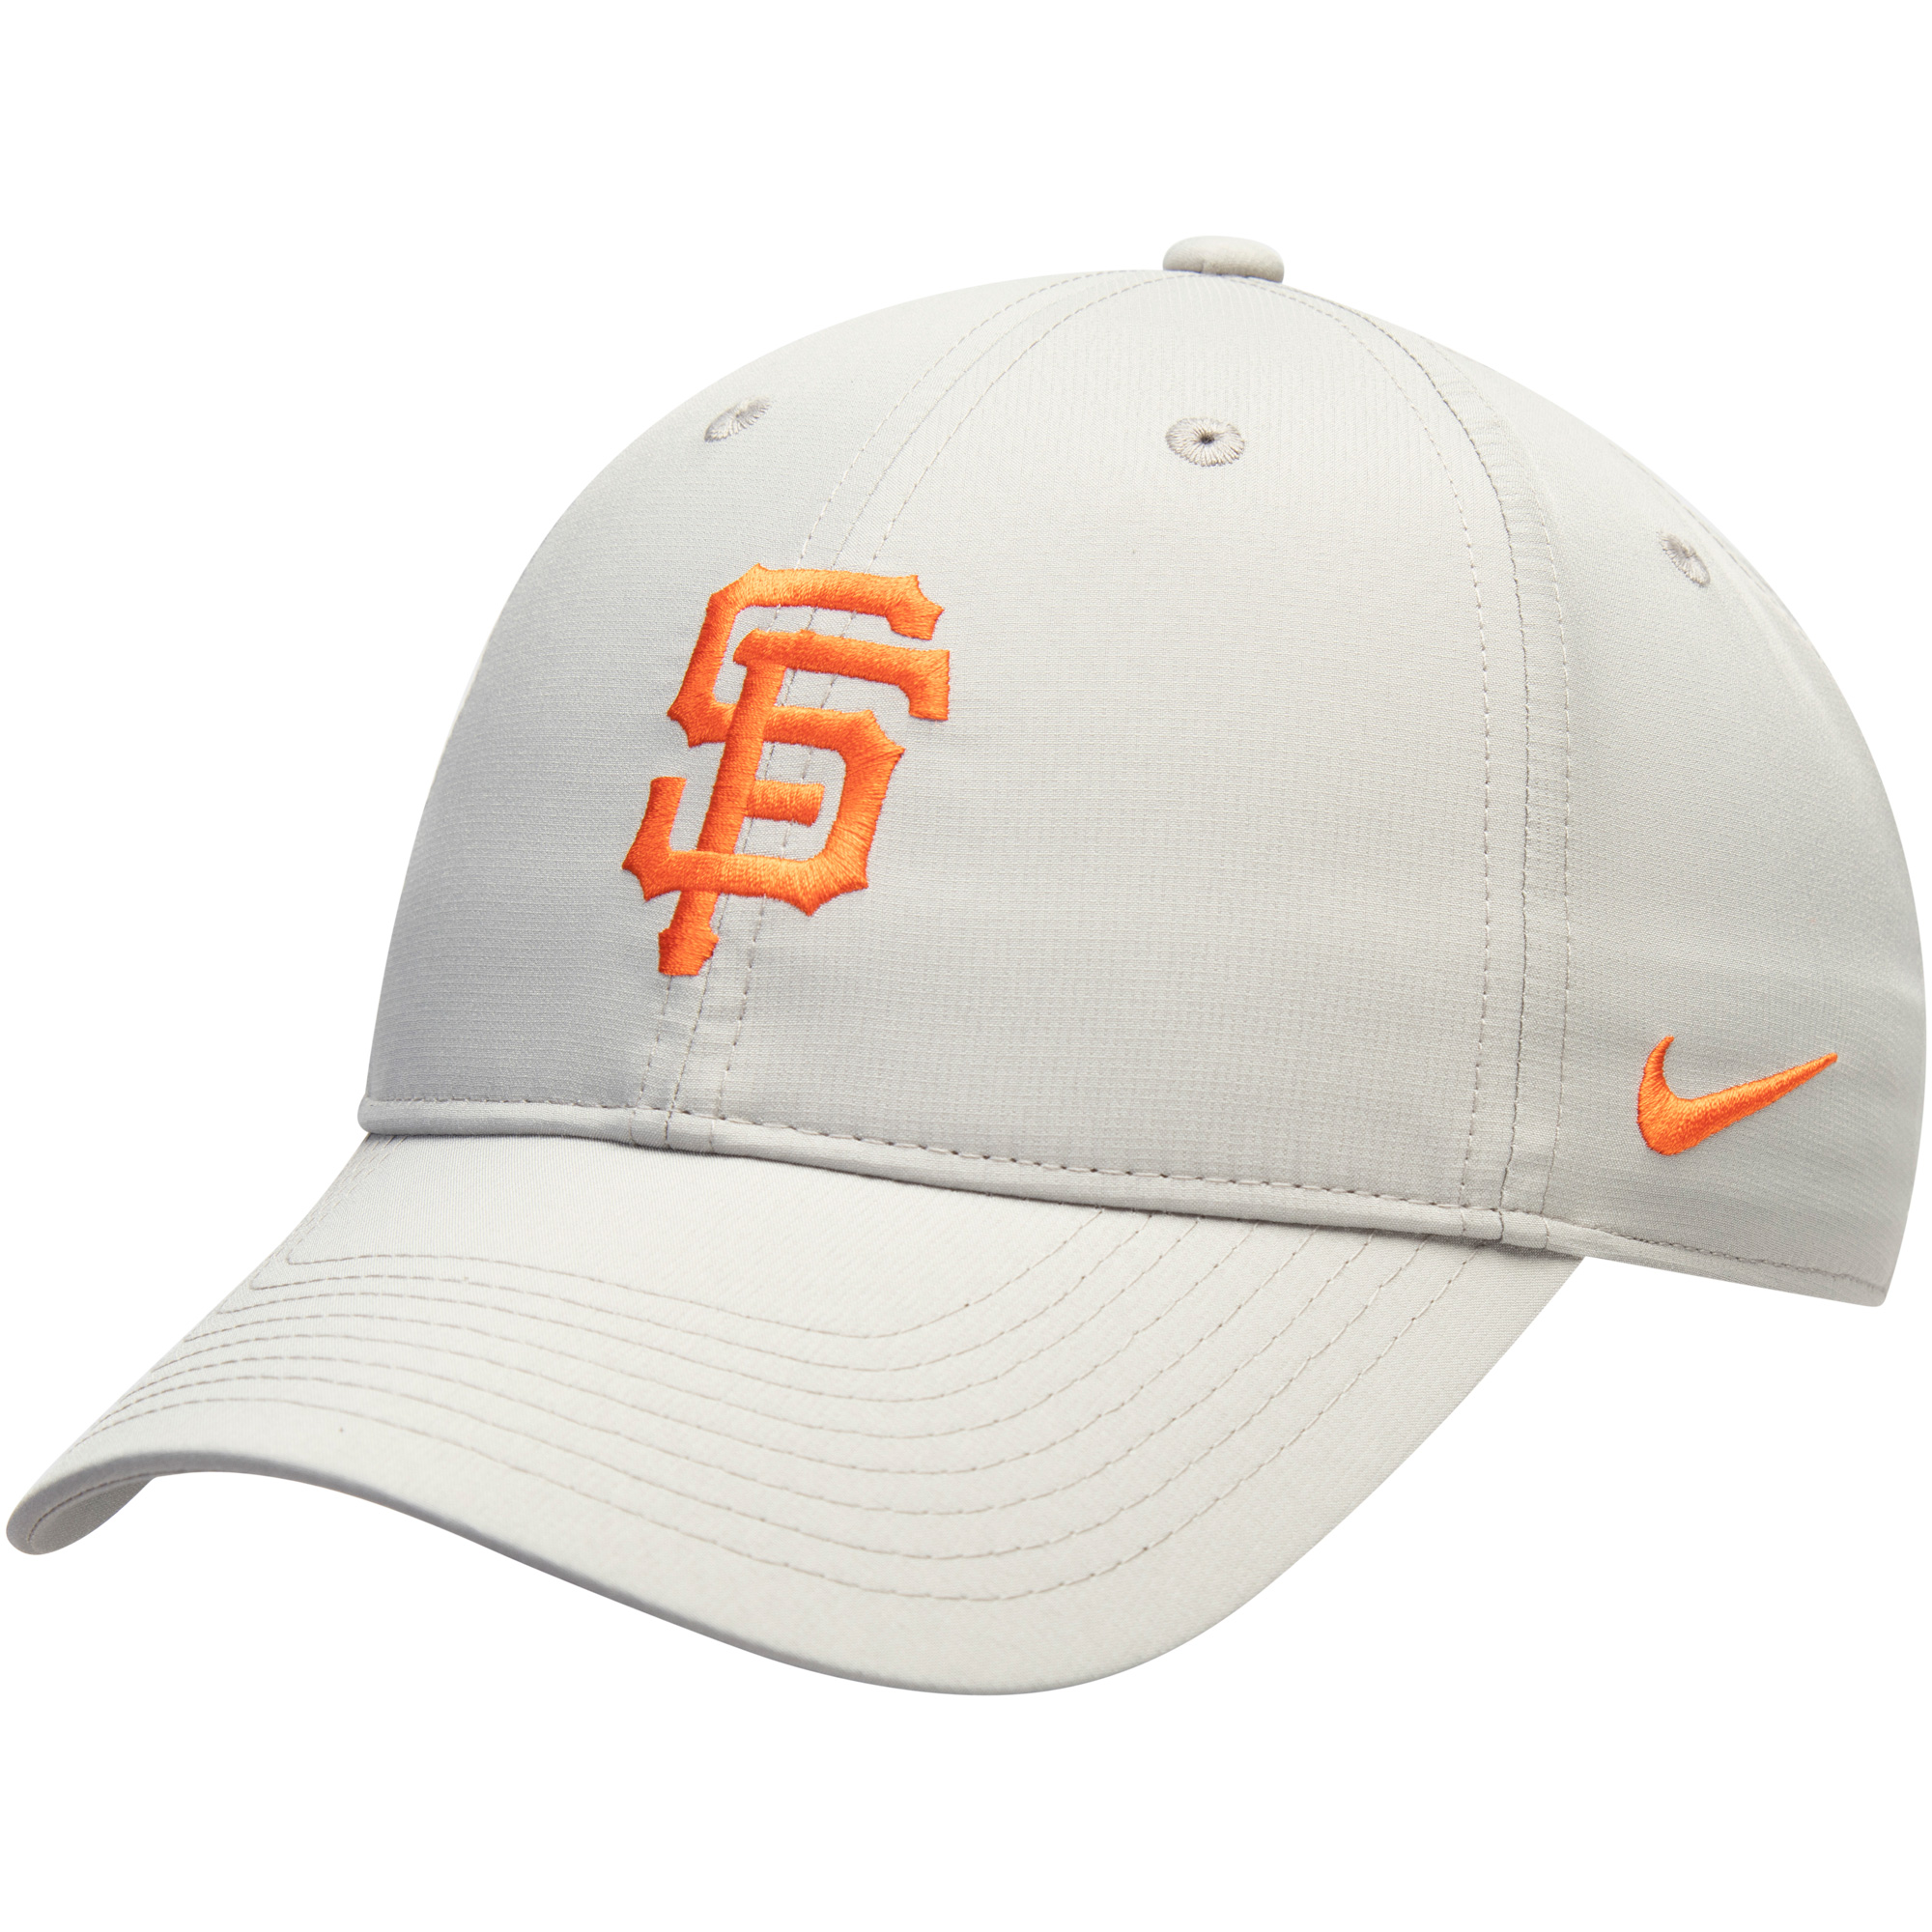 official photos 0951f 5b7f3 Nike San Francisco Giants Gray Legacy 91 Adjustable Performance Hat